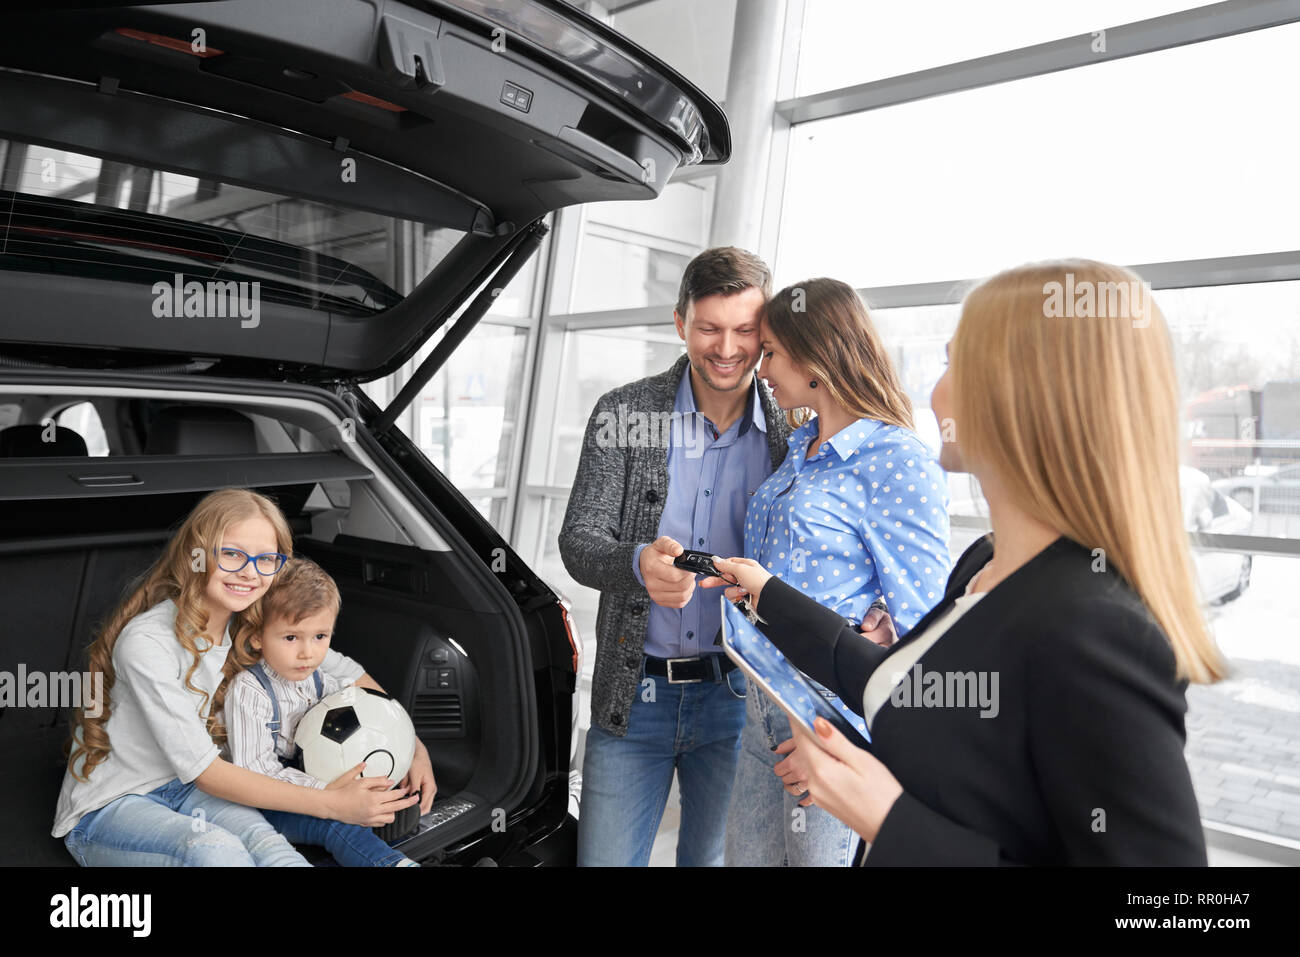 Car dealer of dealership showrrom working with clients, holding folder and giving car keys to buyers of vehicle. Couple standing, posing, daughter and son sitting in car trunk, hugging, smiling. - Stock Image